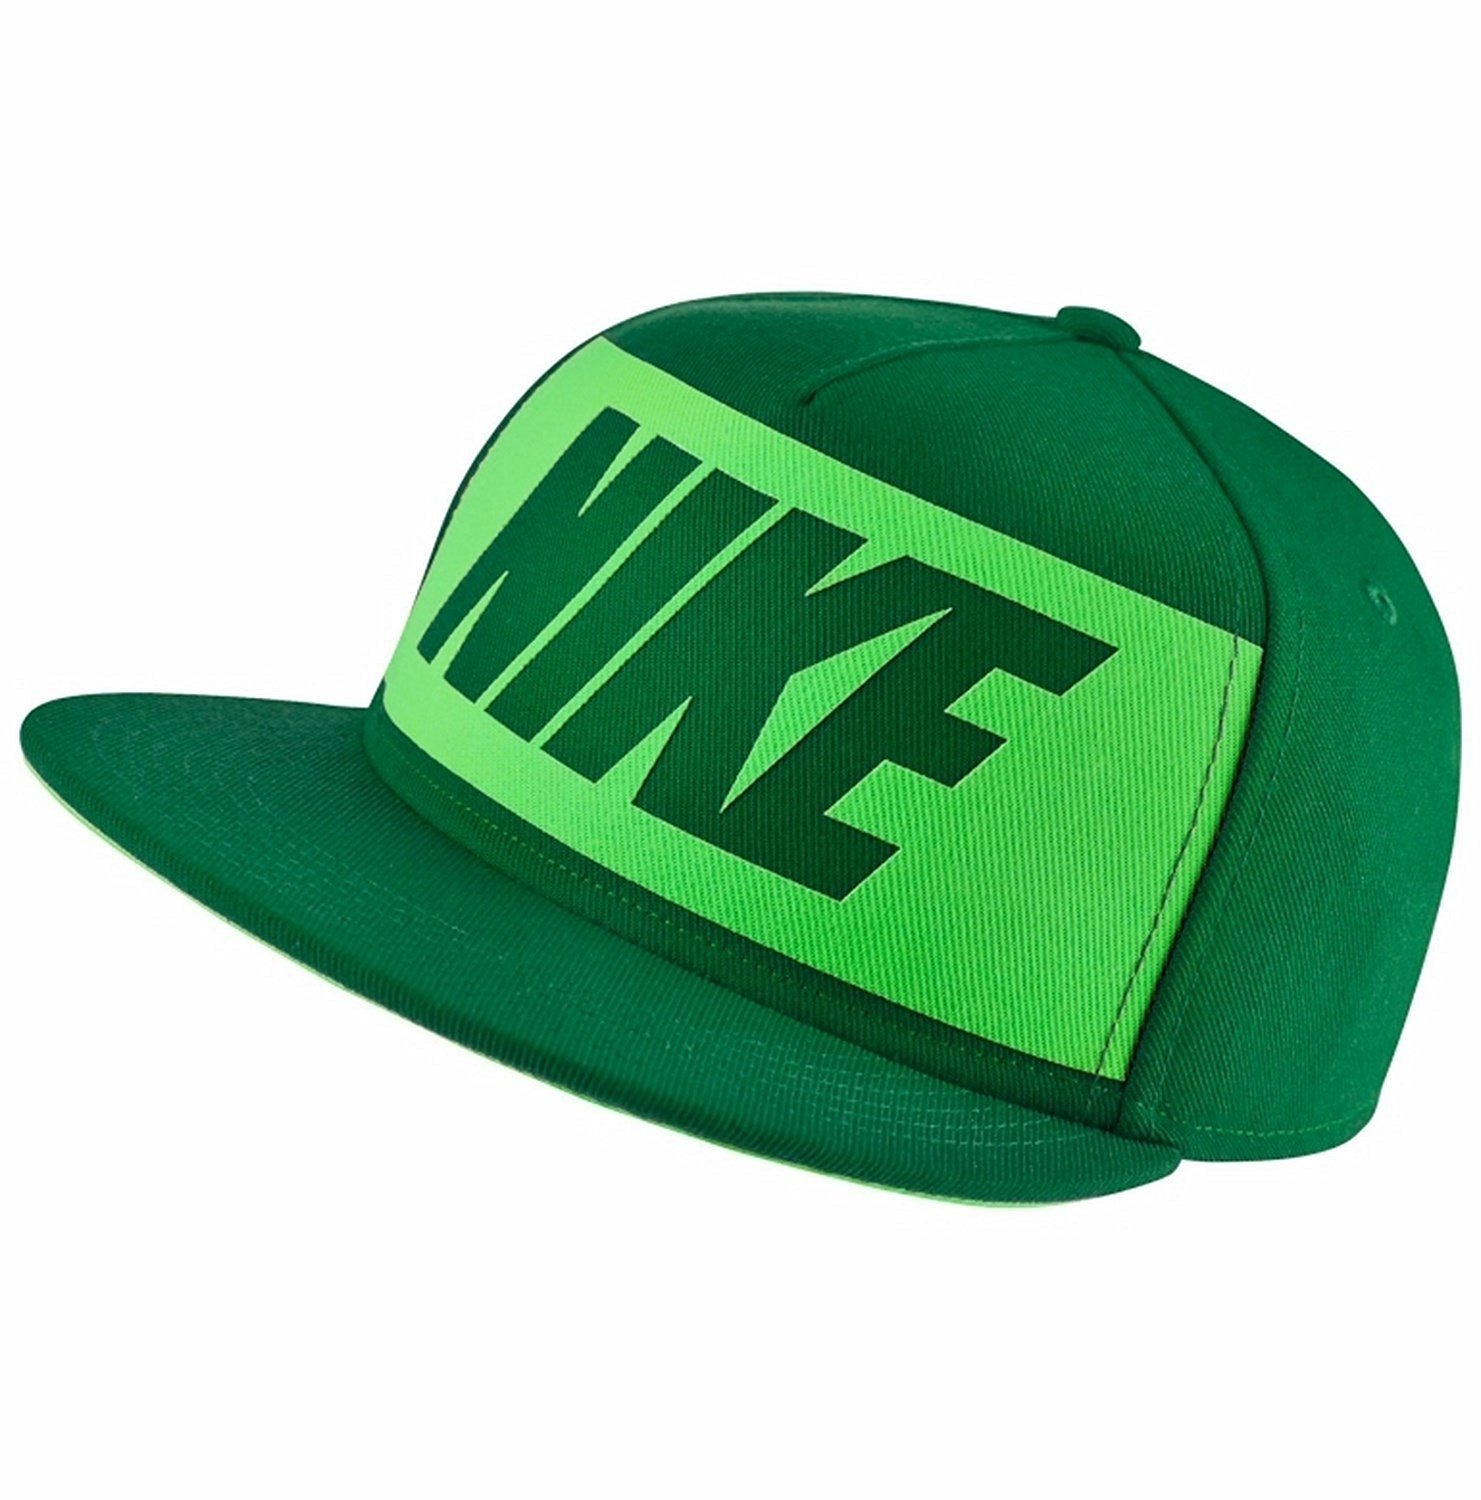 a22a0adb4f24a Get Quotations · Nike True Graphic Pack Youth Adjustable Hat (Pine Green  Volt)